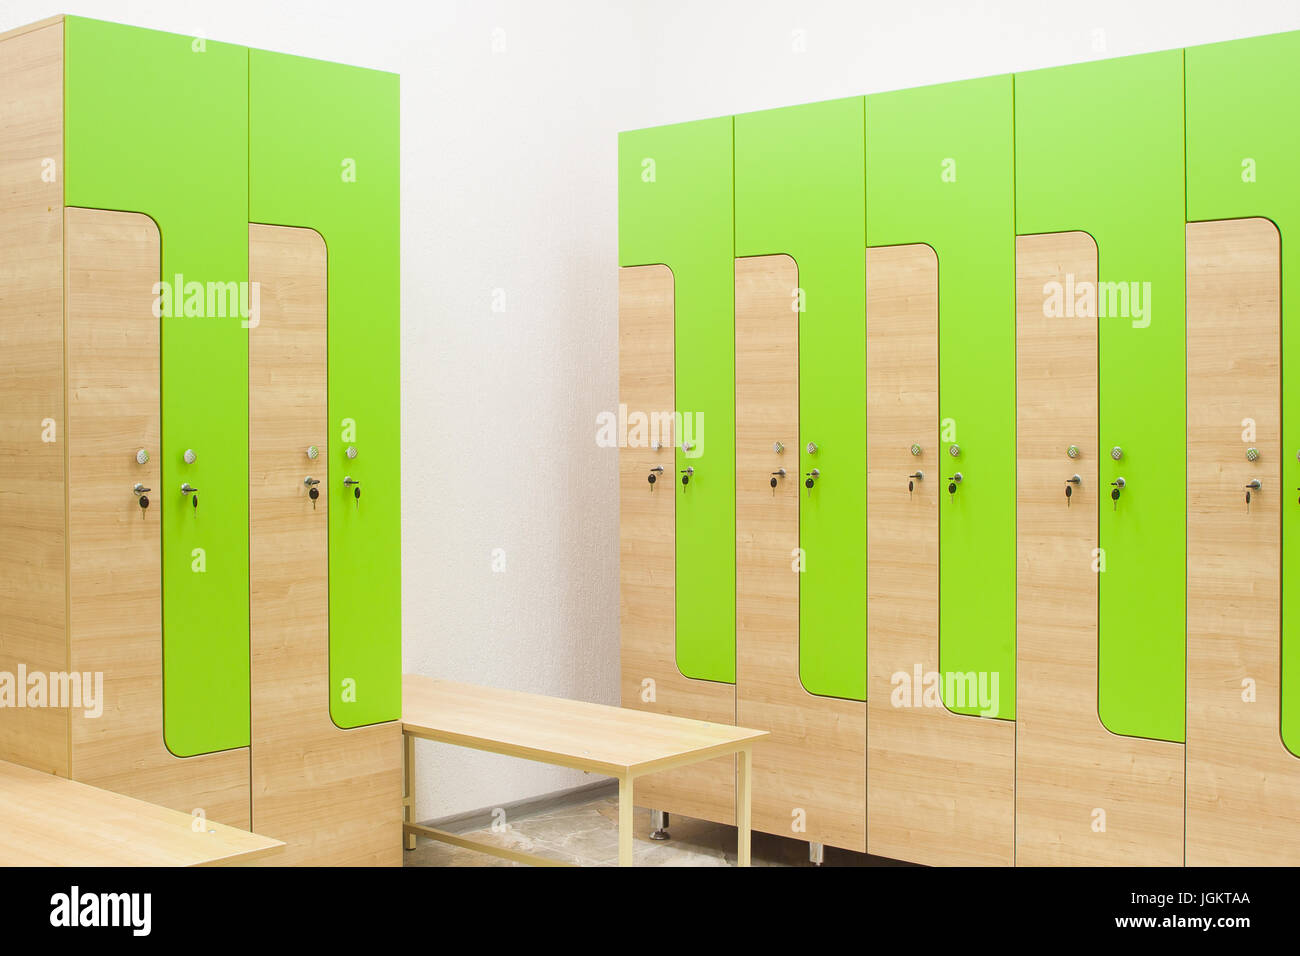 Marvelous Green And Wooden Sports Wardrobe In The Gym For Clothes And Machost Co Dining Chair Design Ideas Machostcouk